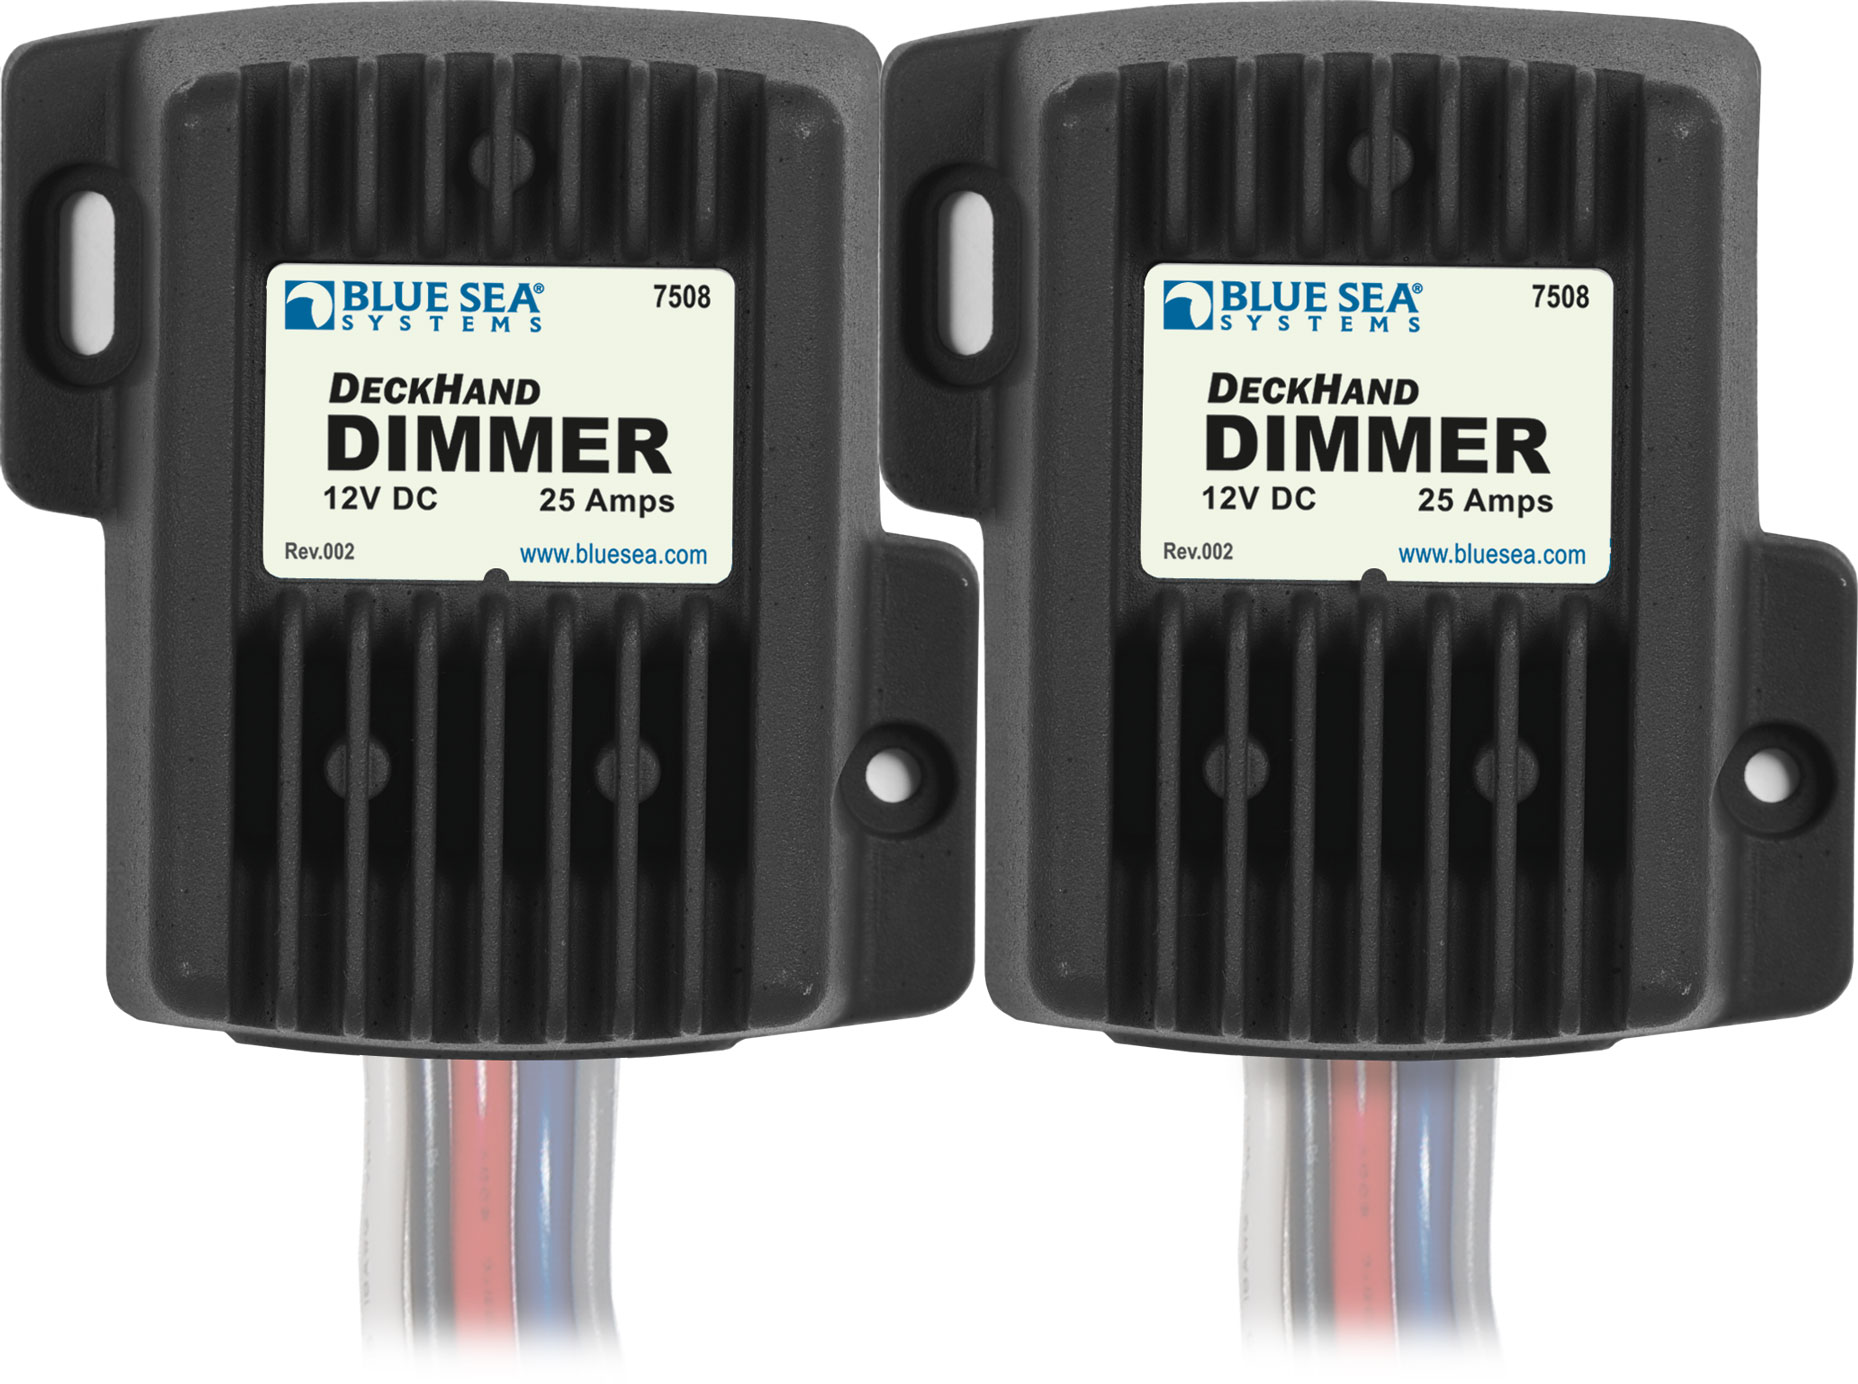 Deckhand Dimmer 12v Dc 25a Blue Sea Systems Switch Wiring Diagram Dimmers